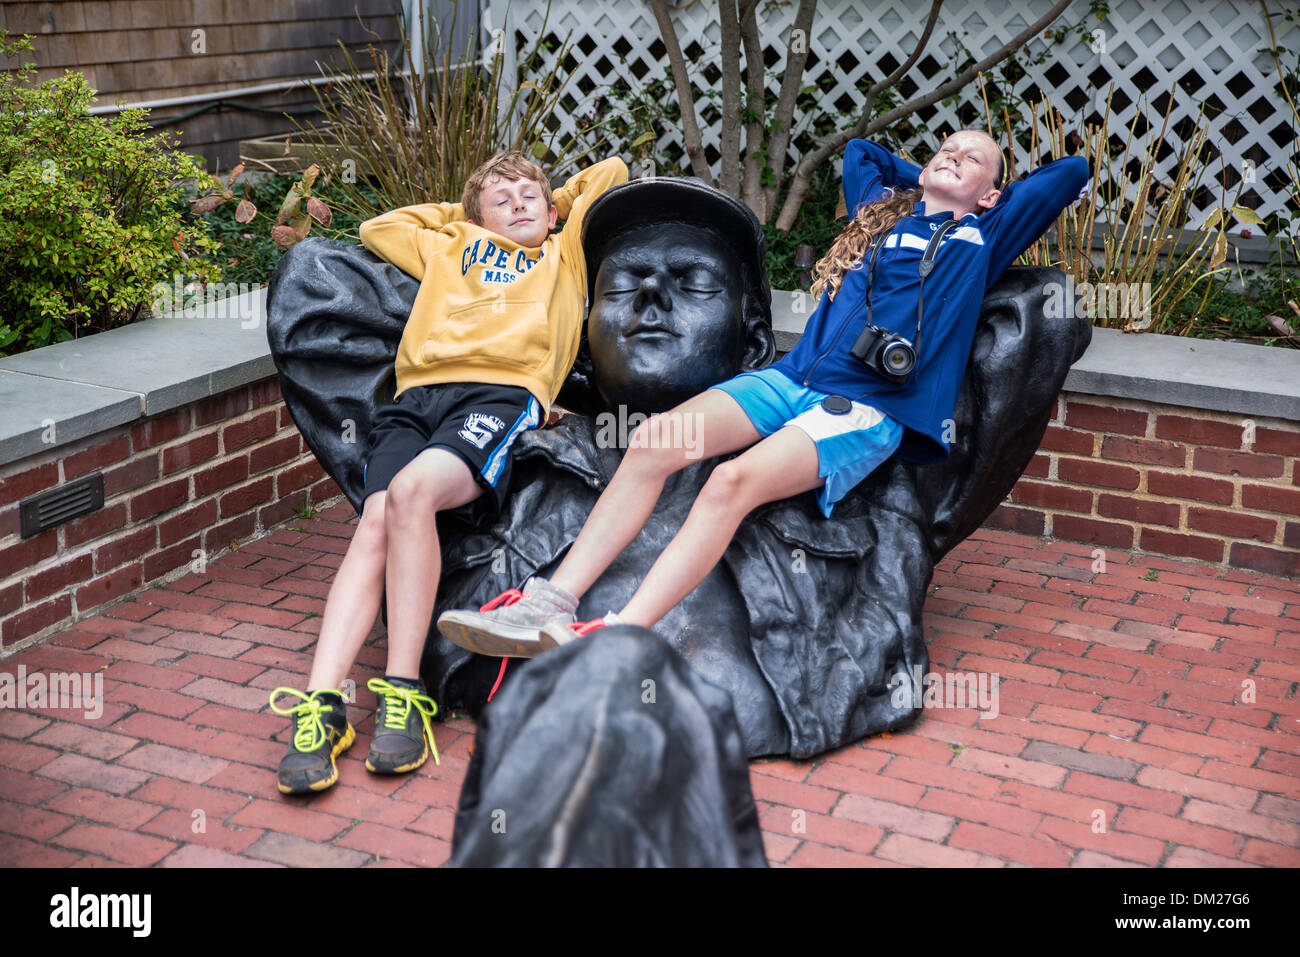 Hermanos relajarse con una escultura, en Edgartown, Martha's Vineyard, Massachusetts, EE.UU. Imagen De Stock